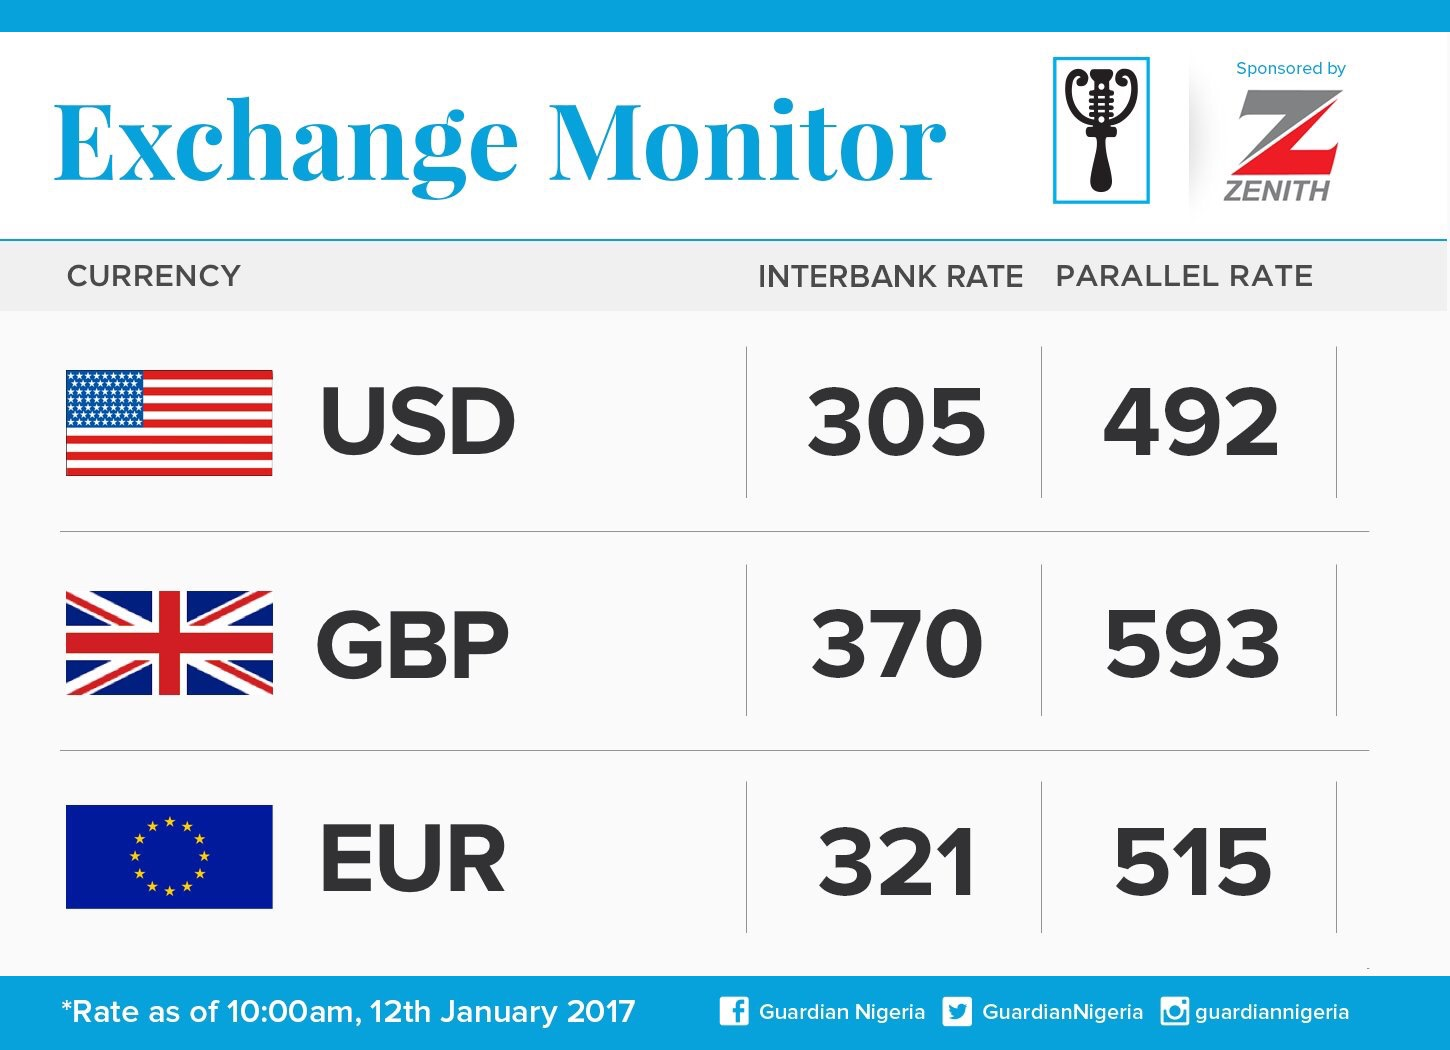 Exchange Rate For 12th January 2017